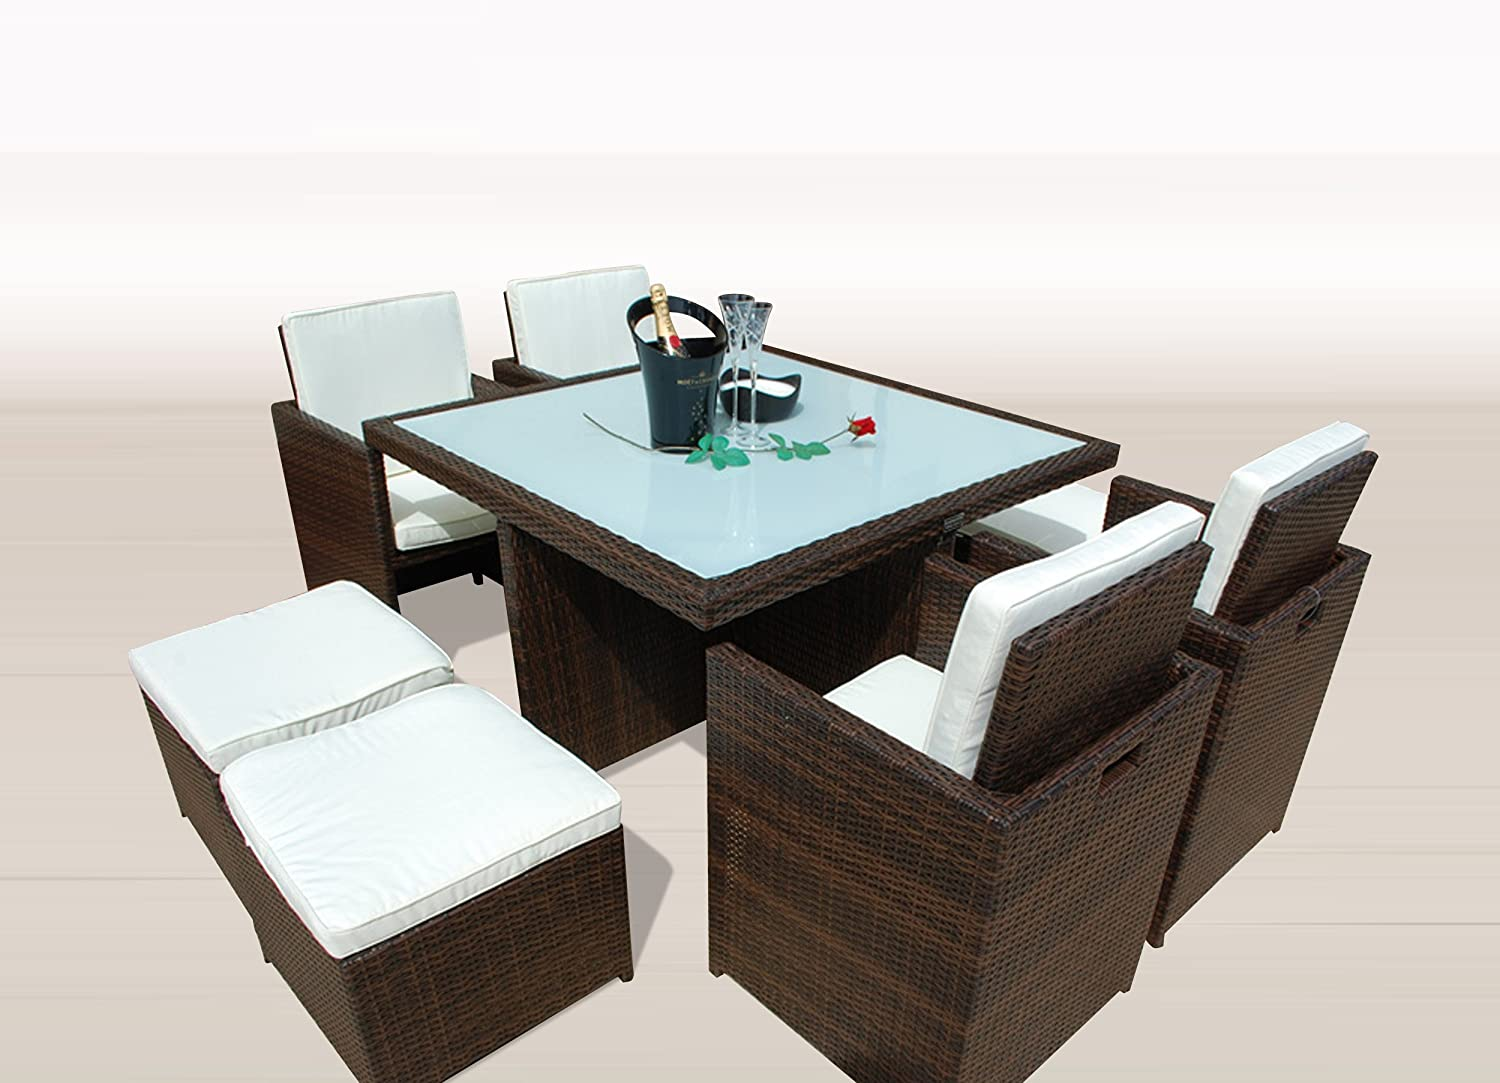 gartenm bel polyrattan essgruppe tisch mit 4 x stuhl 4. Black Bedroom Furniture Sets. Home Design Ideas